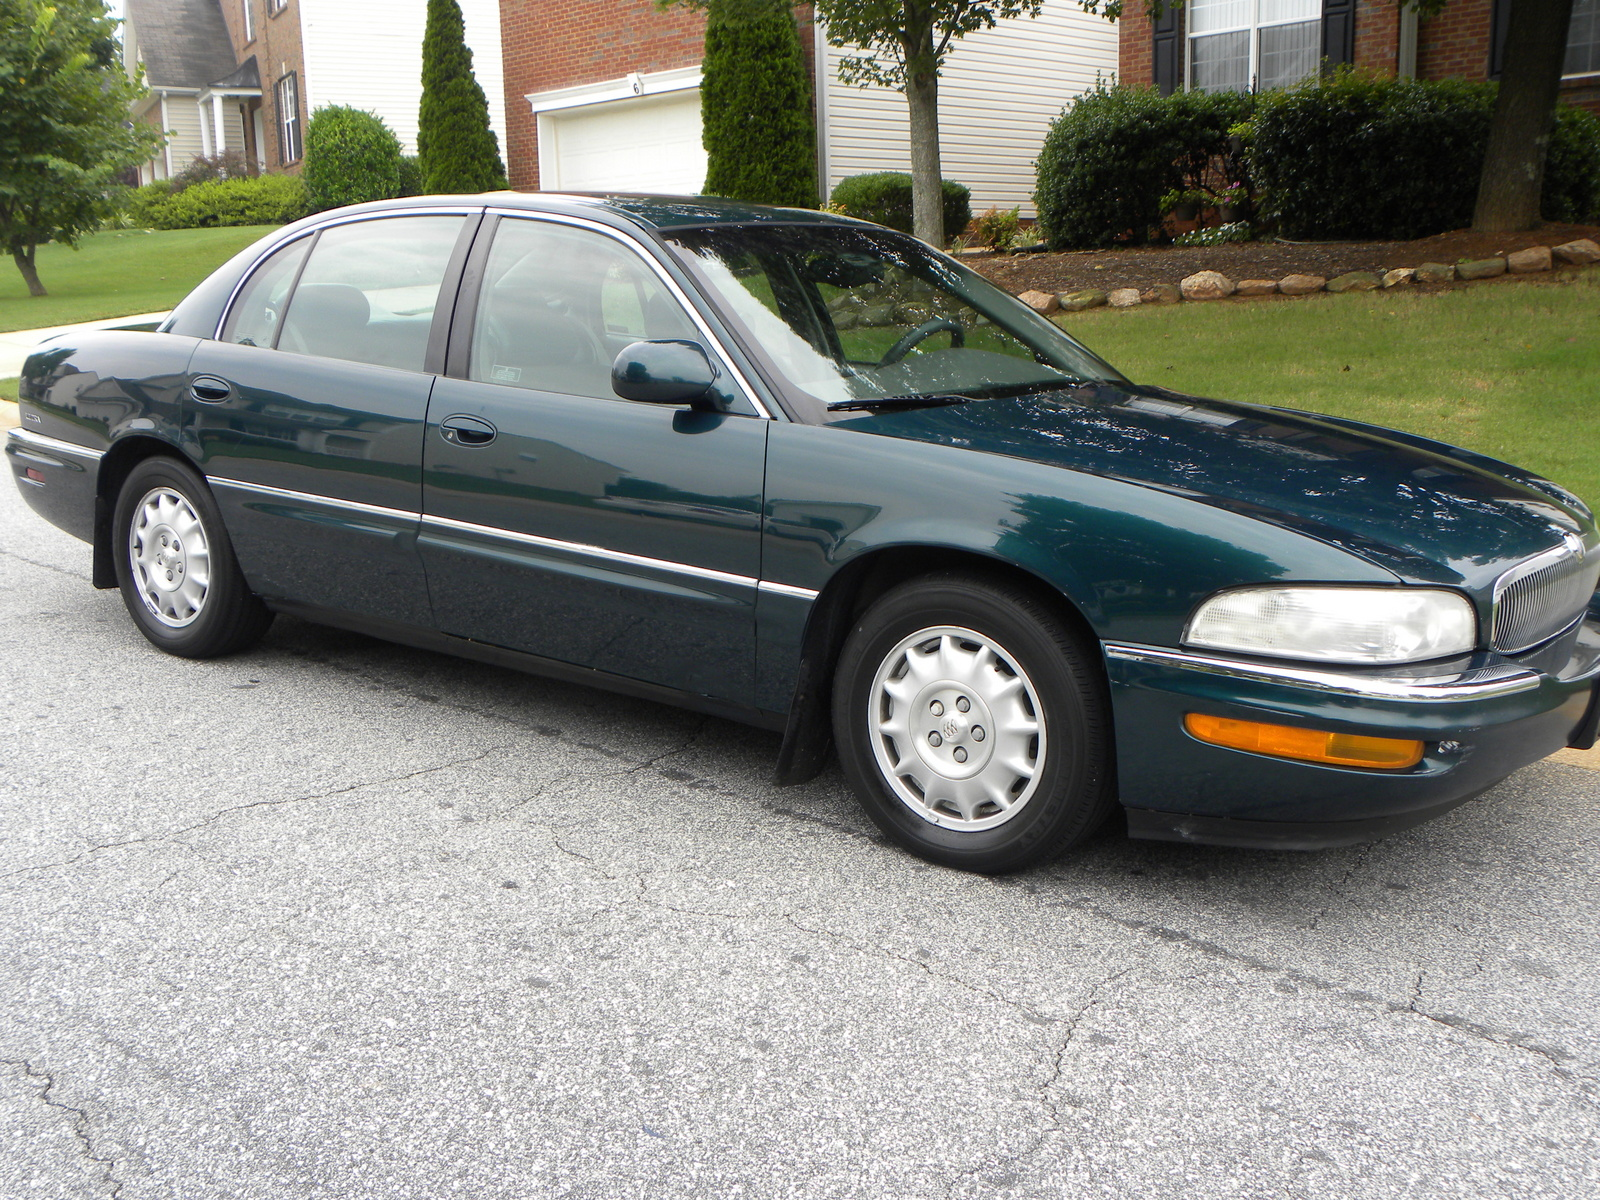 1999 Buick Park Avenue 4 Dr Ultra Supercharged Sedan picture